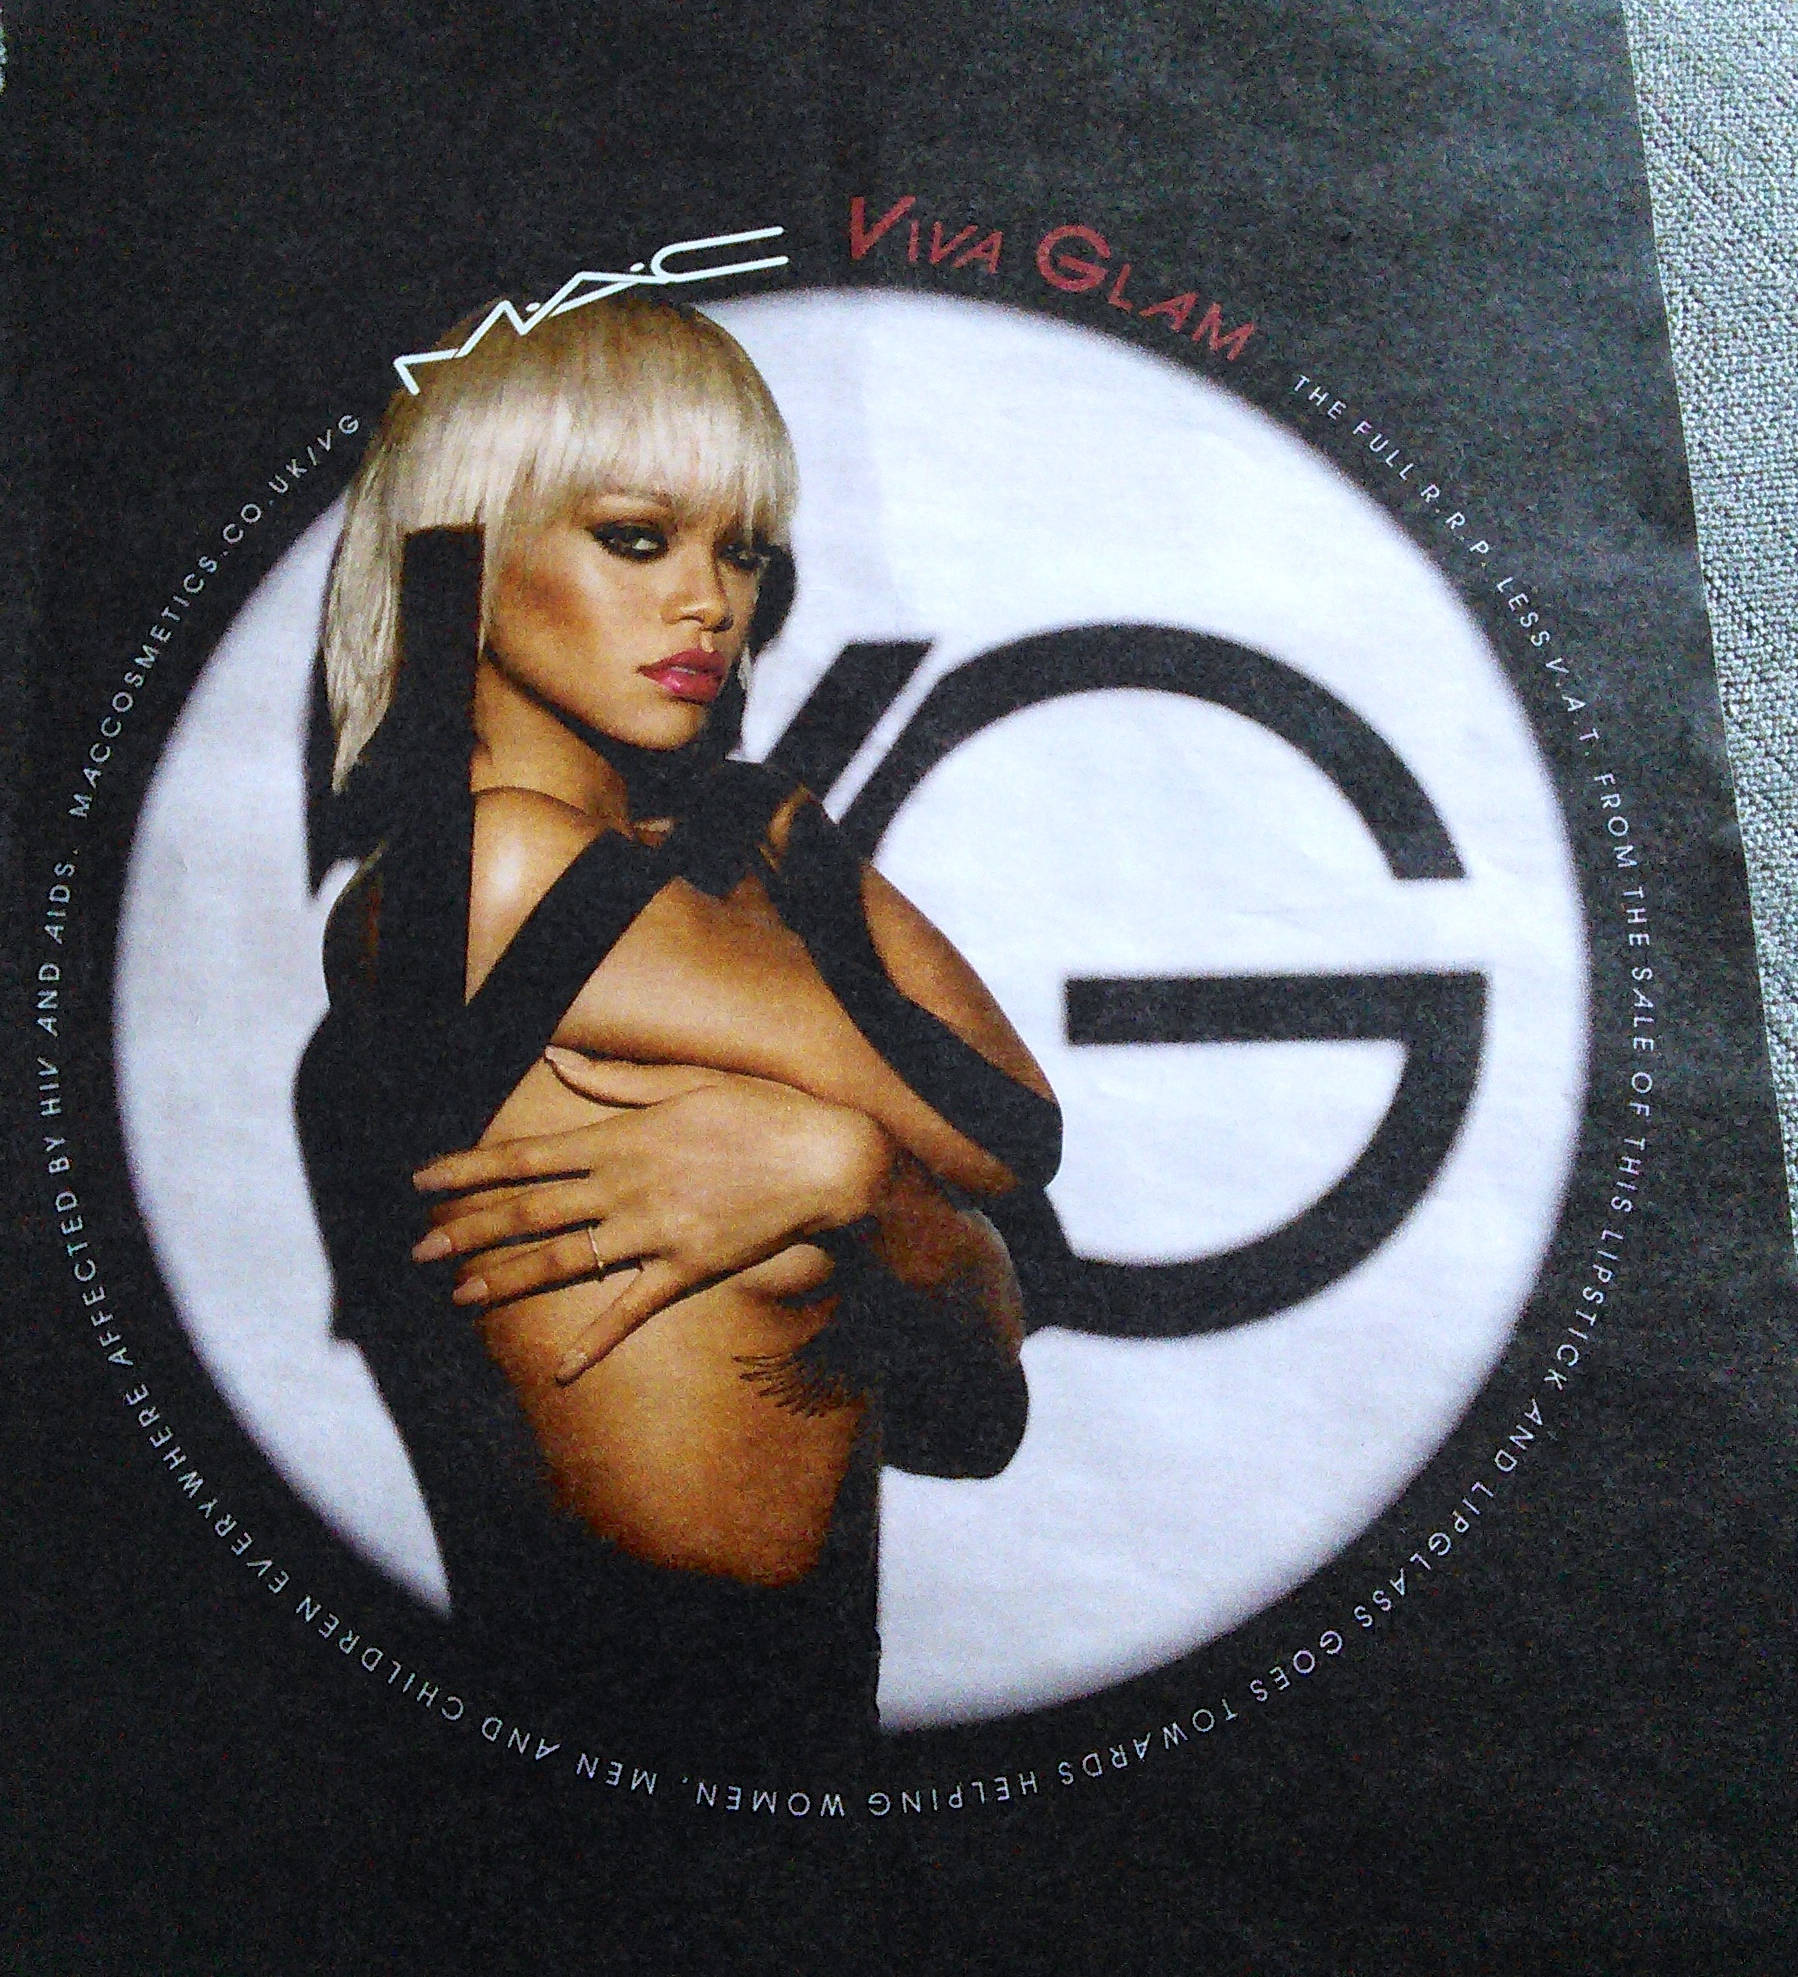 MAC's viva glam ad from the Stylist magazine